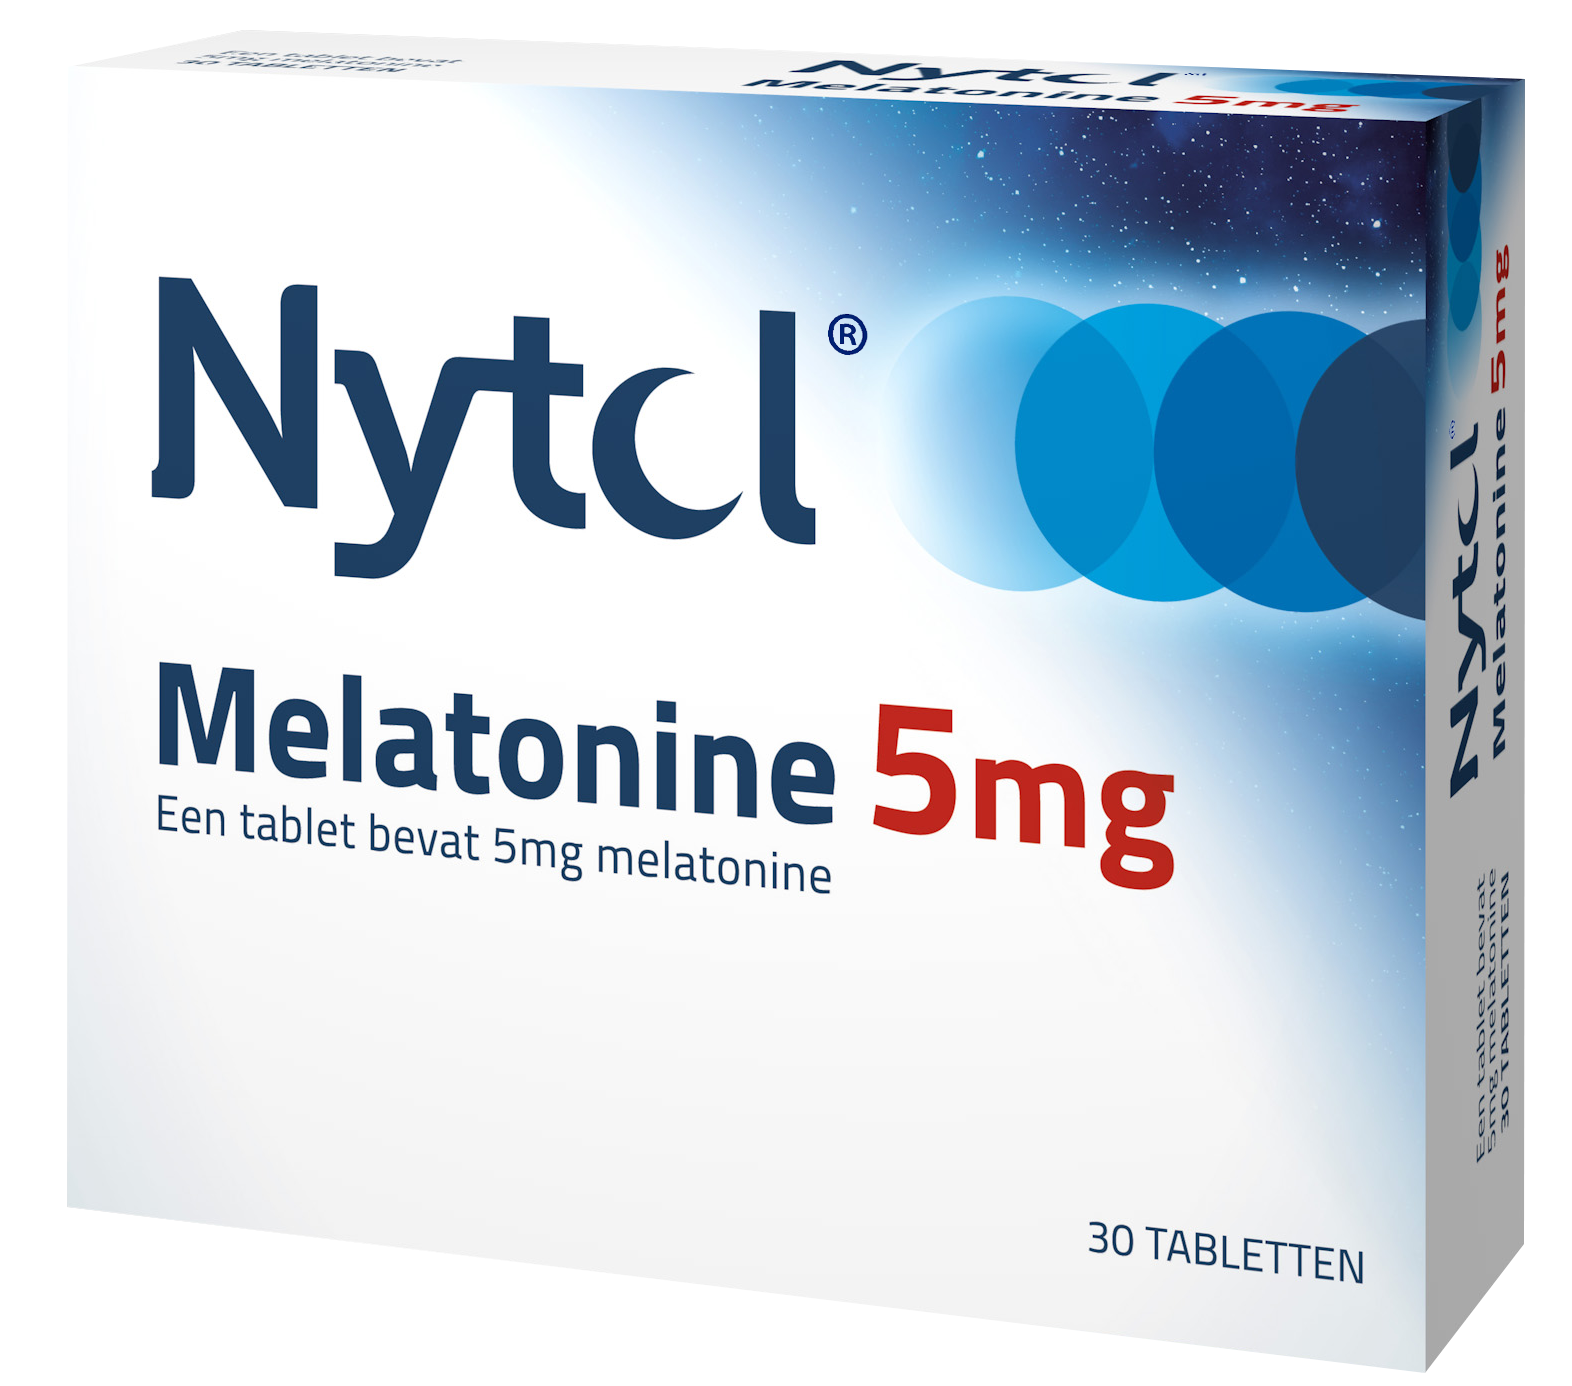 Nytol Melatonine 5mg blister